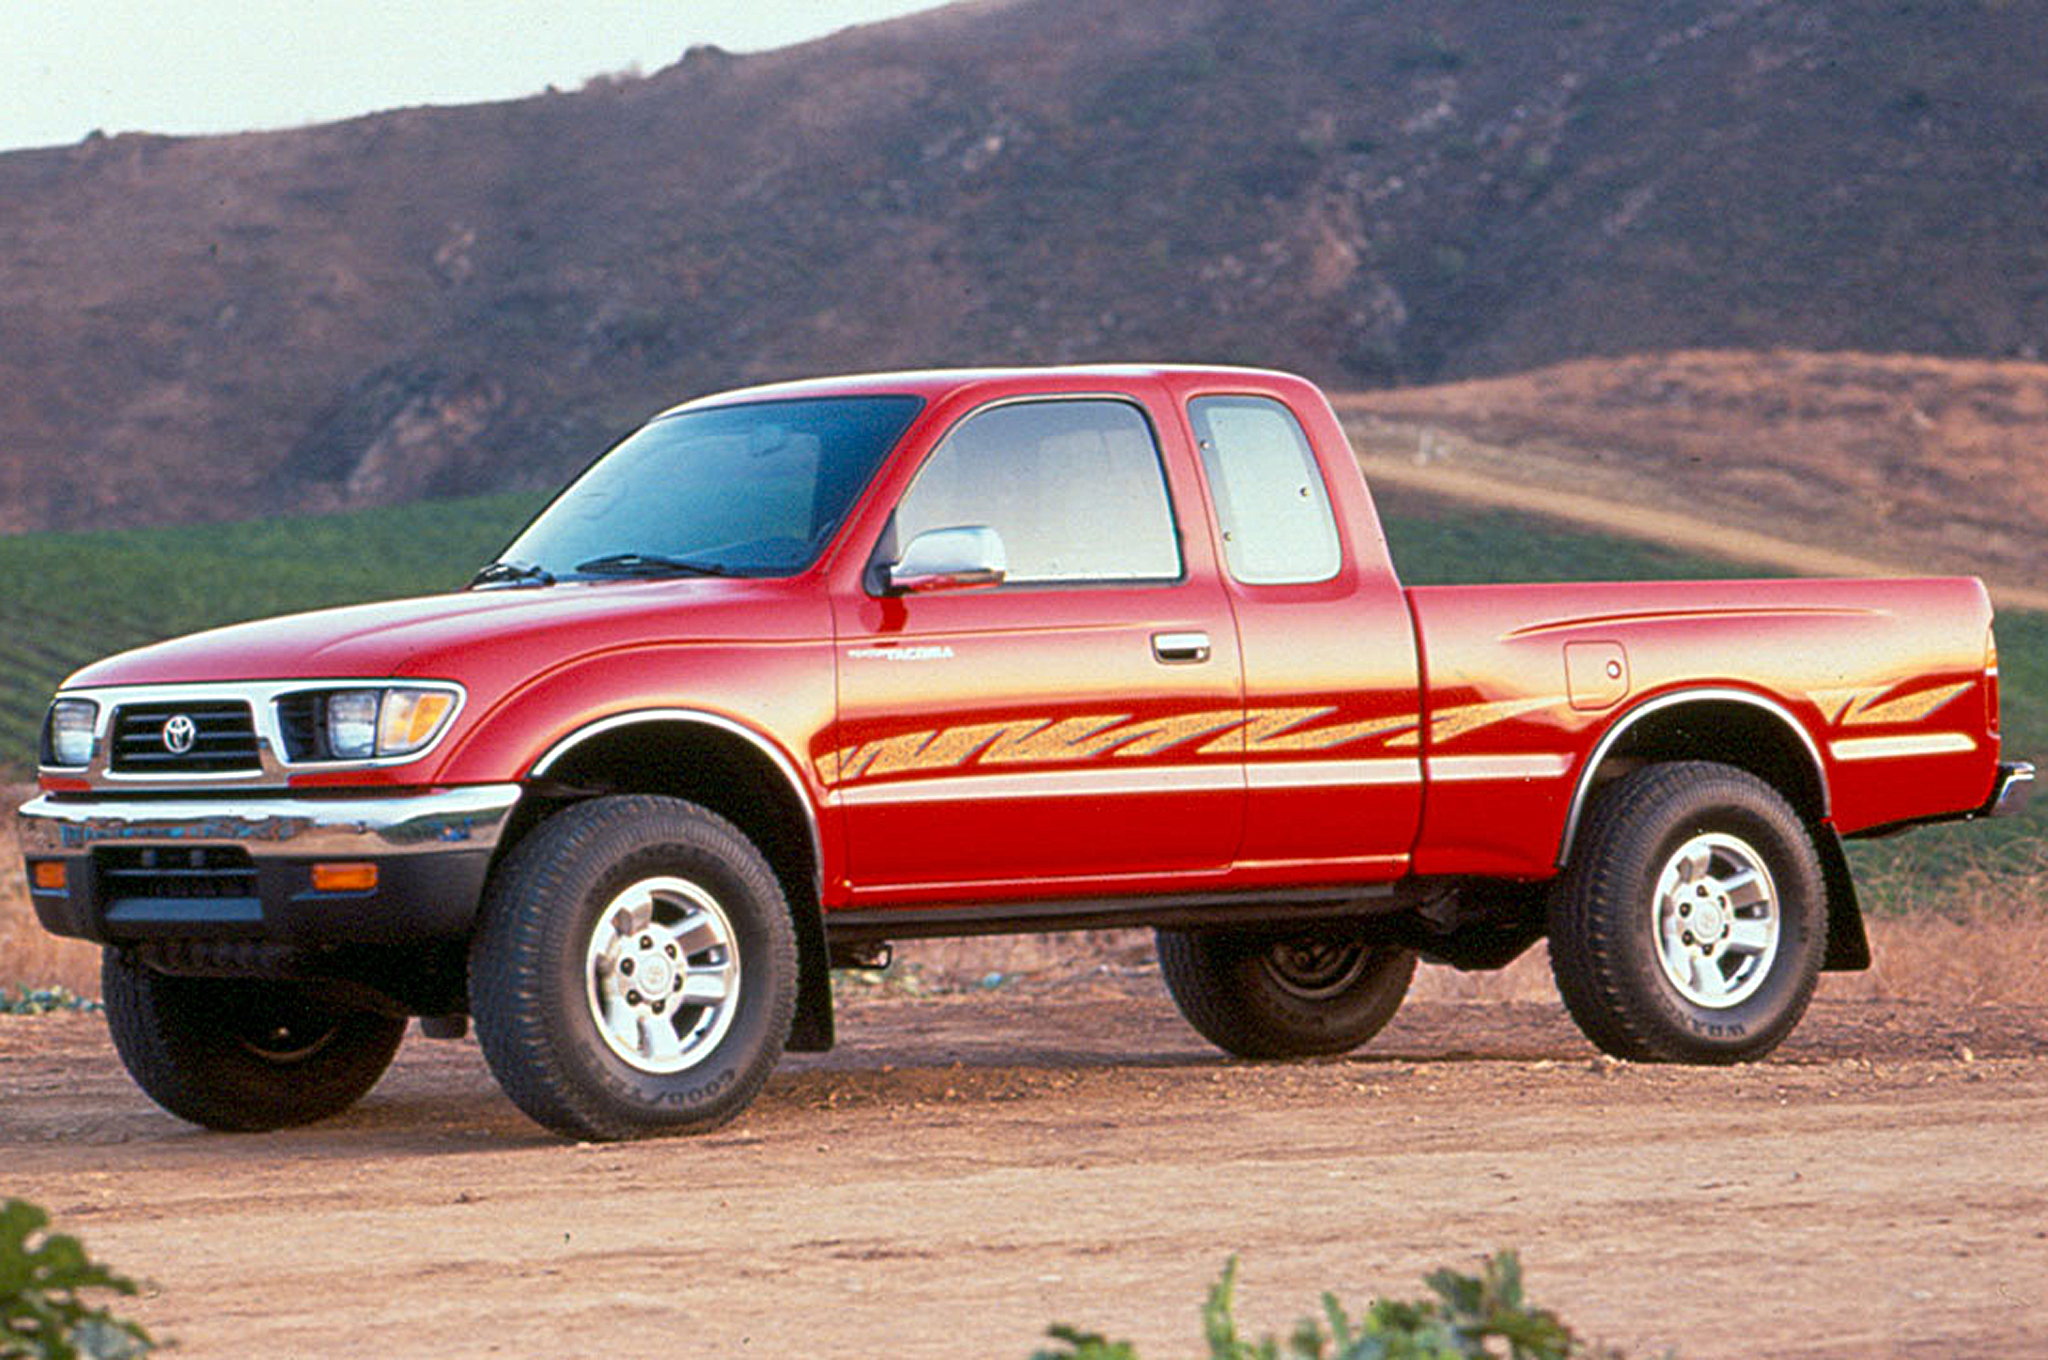 20 Years Of The Toyota Tacoma And Beyond A Look Through 1995 Chevy 3 4 Liter Engine Motor Trend